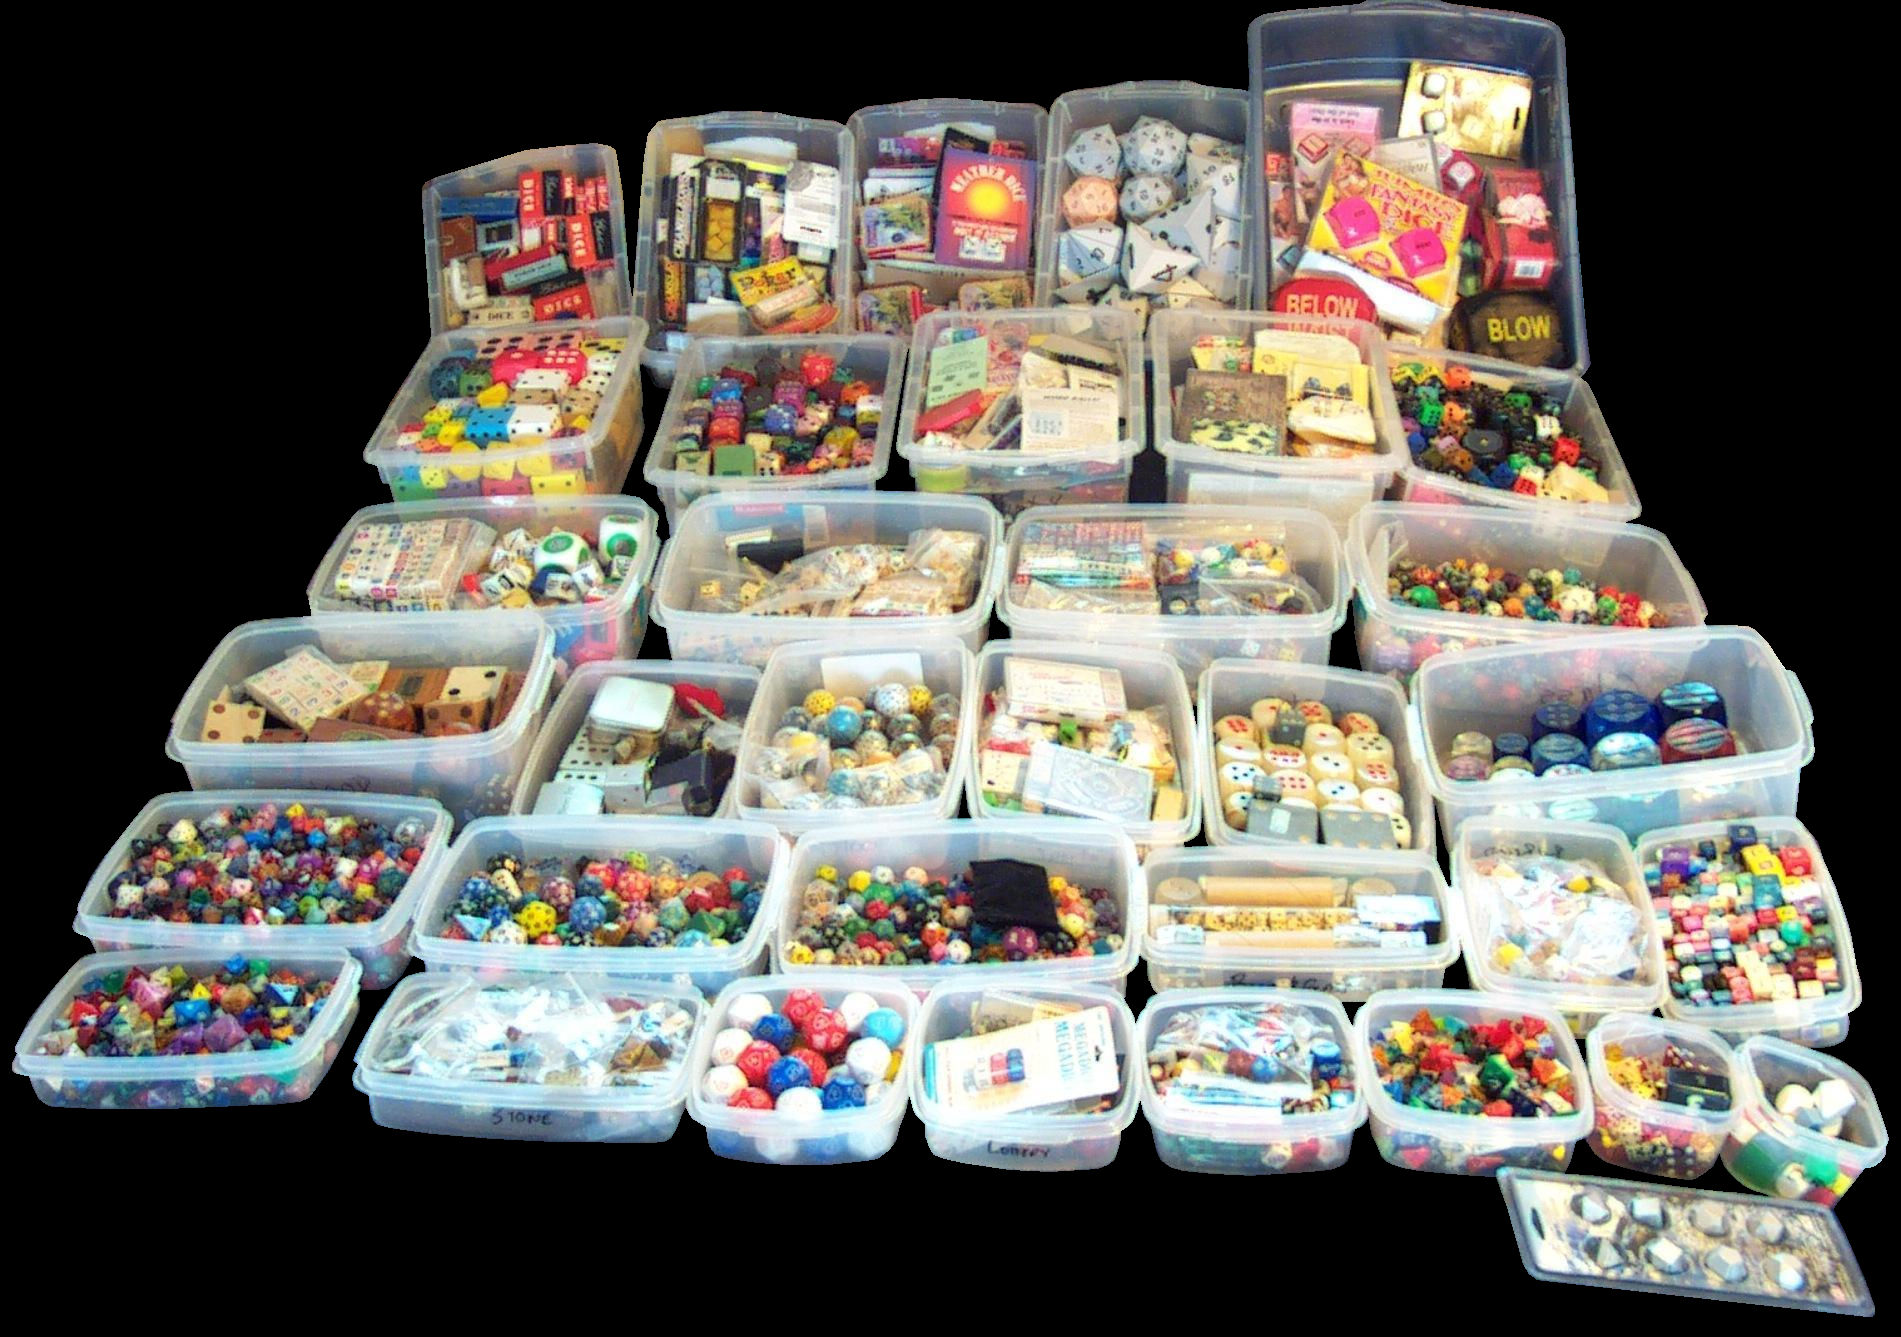 DiceCollector com s HOW THE COLLECTION IS HOUSED CONTAINERS 6 OLD SHELVES  Dice   CONTAINERS 7 MOST OF THE COLLECTION